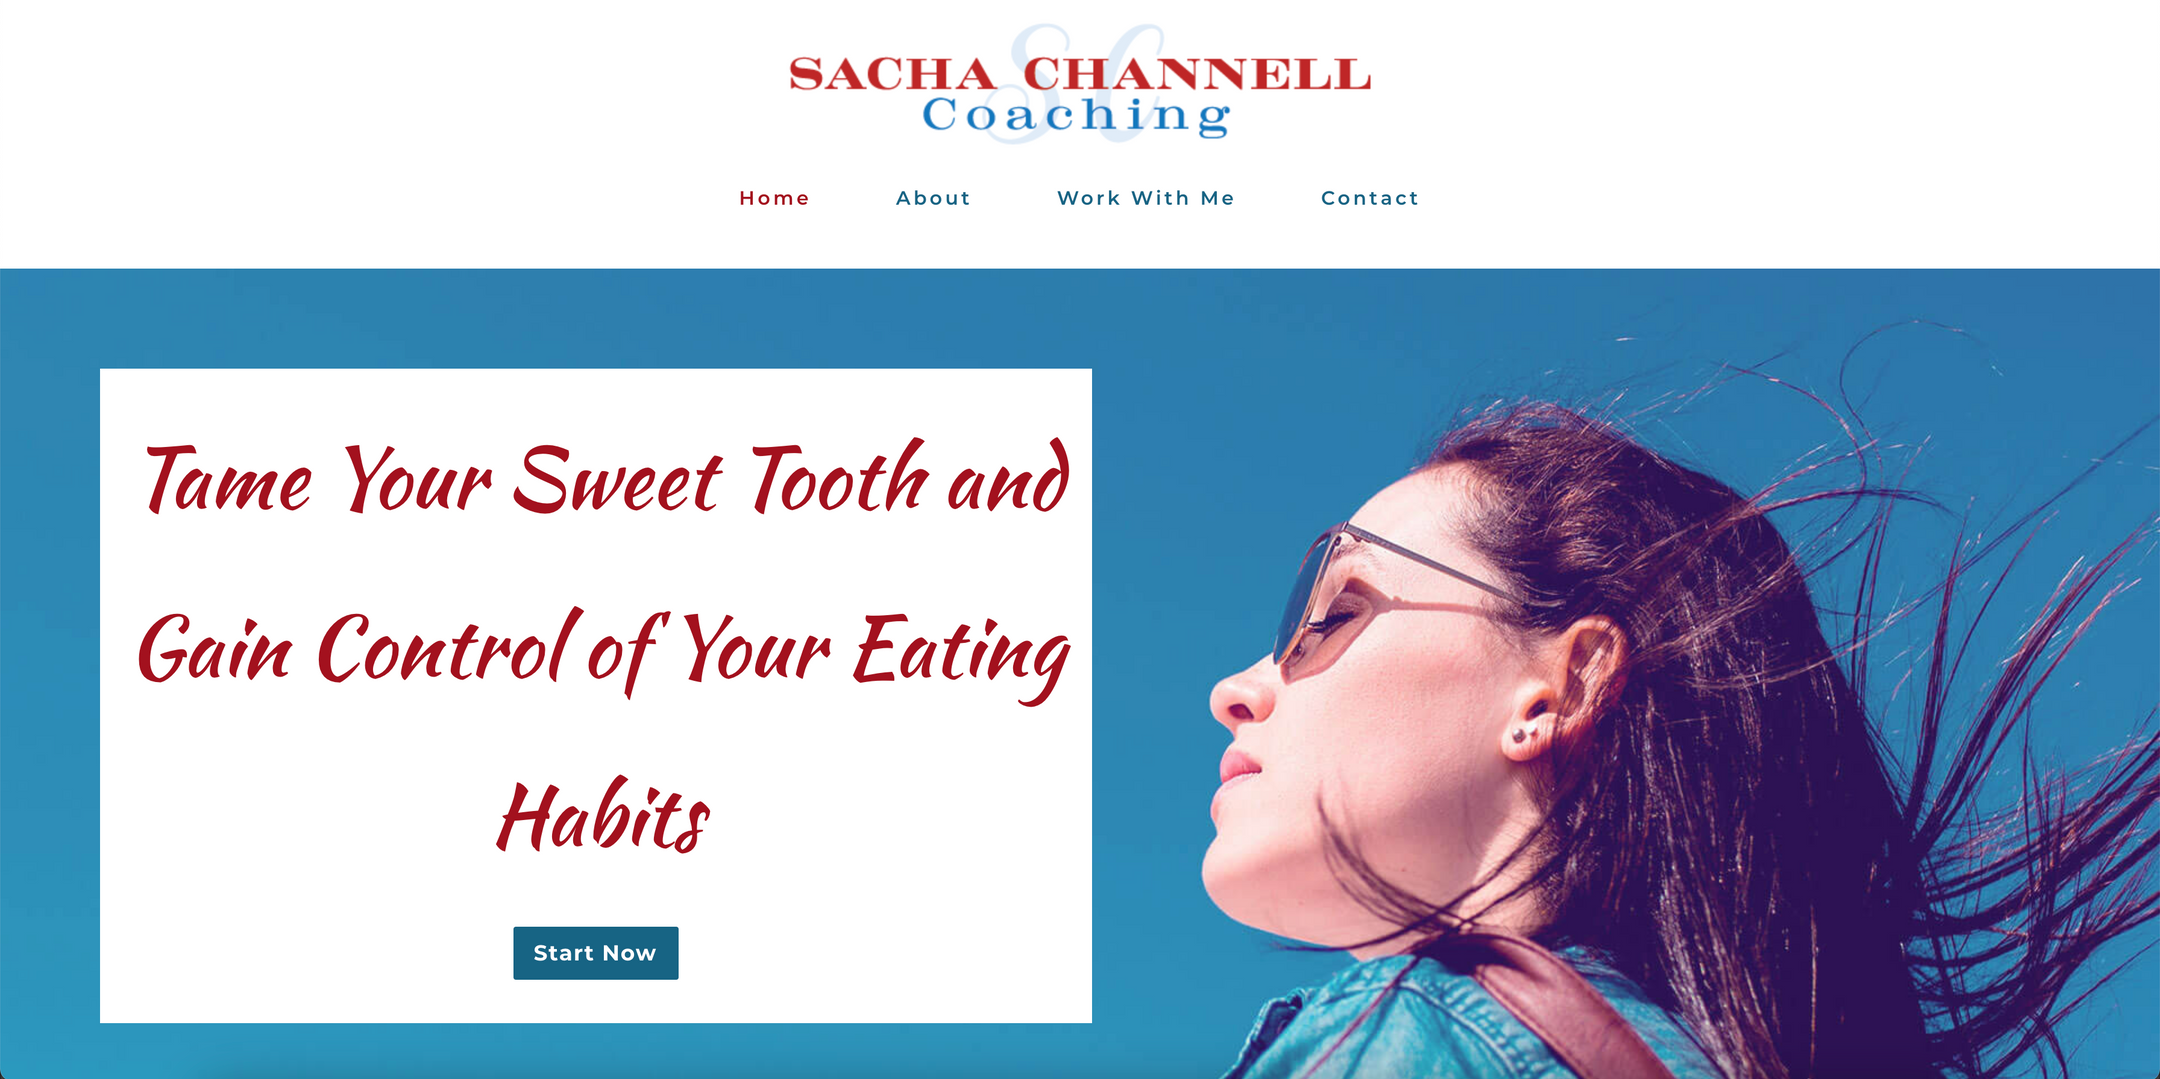 Sacha Channell Coaching Home Page